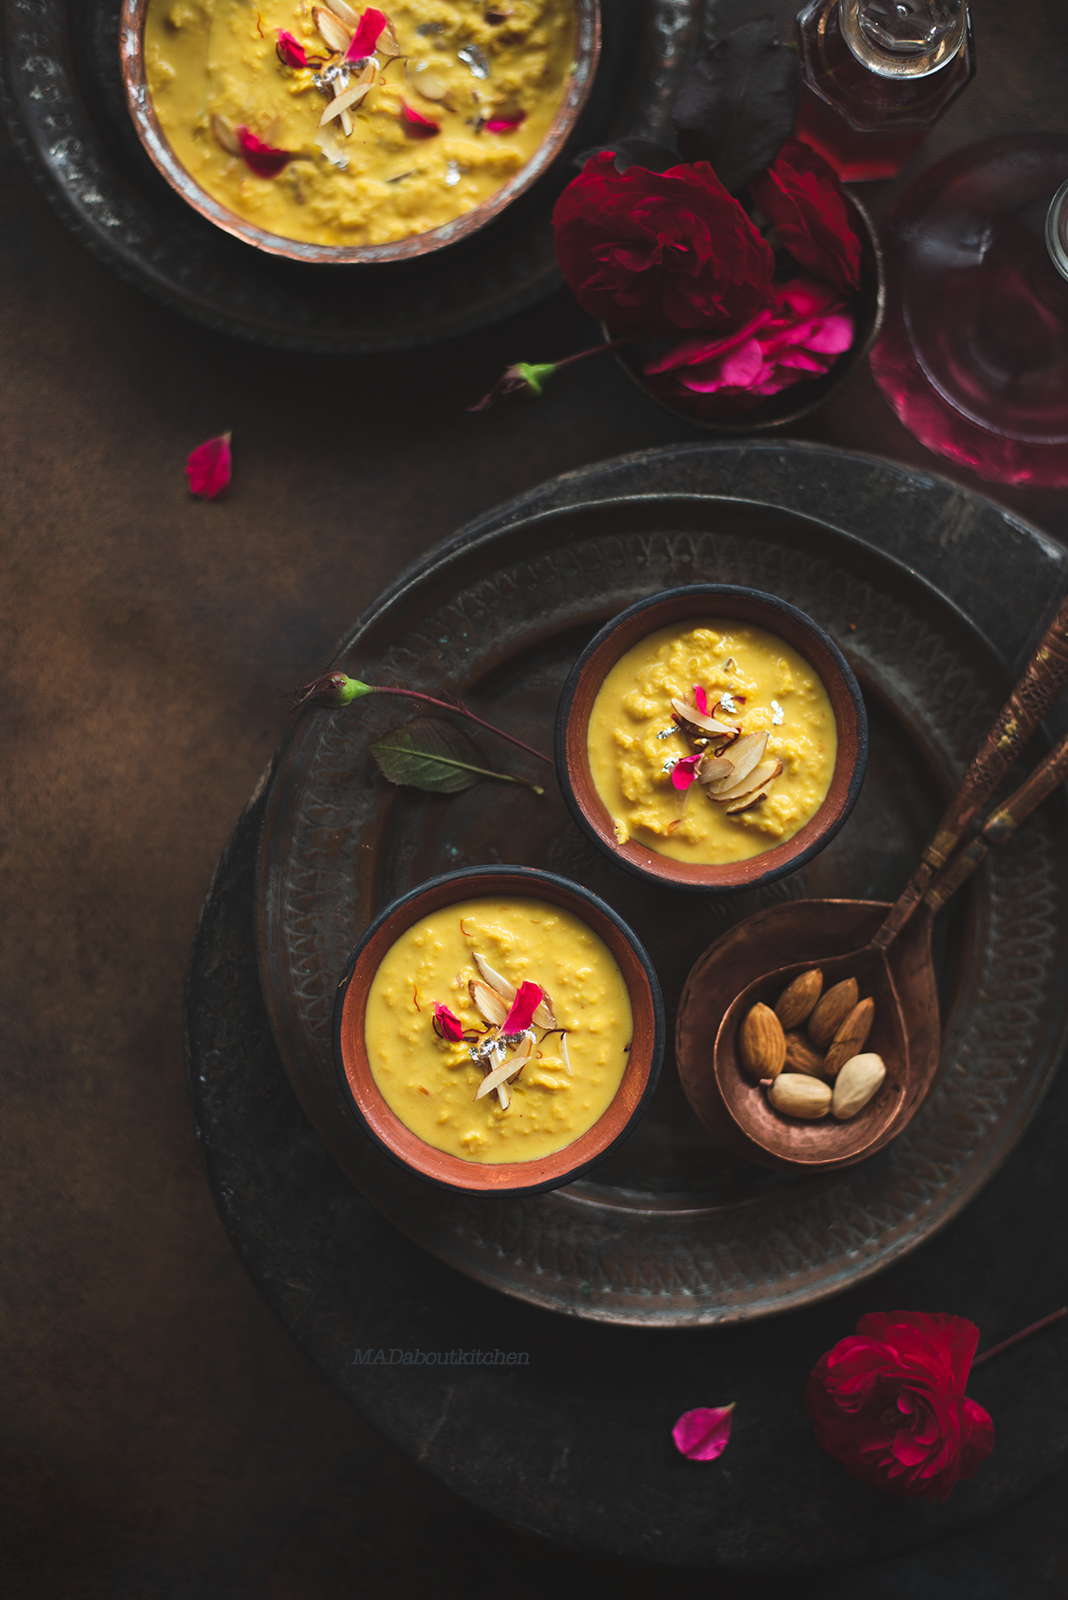 Ingredients  2 ltrs - whole fat milk 1/4 cup - Sugar 1 tsp - Saffron Almond flakes and Dry Rose Petals